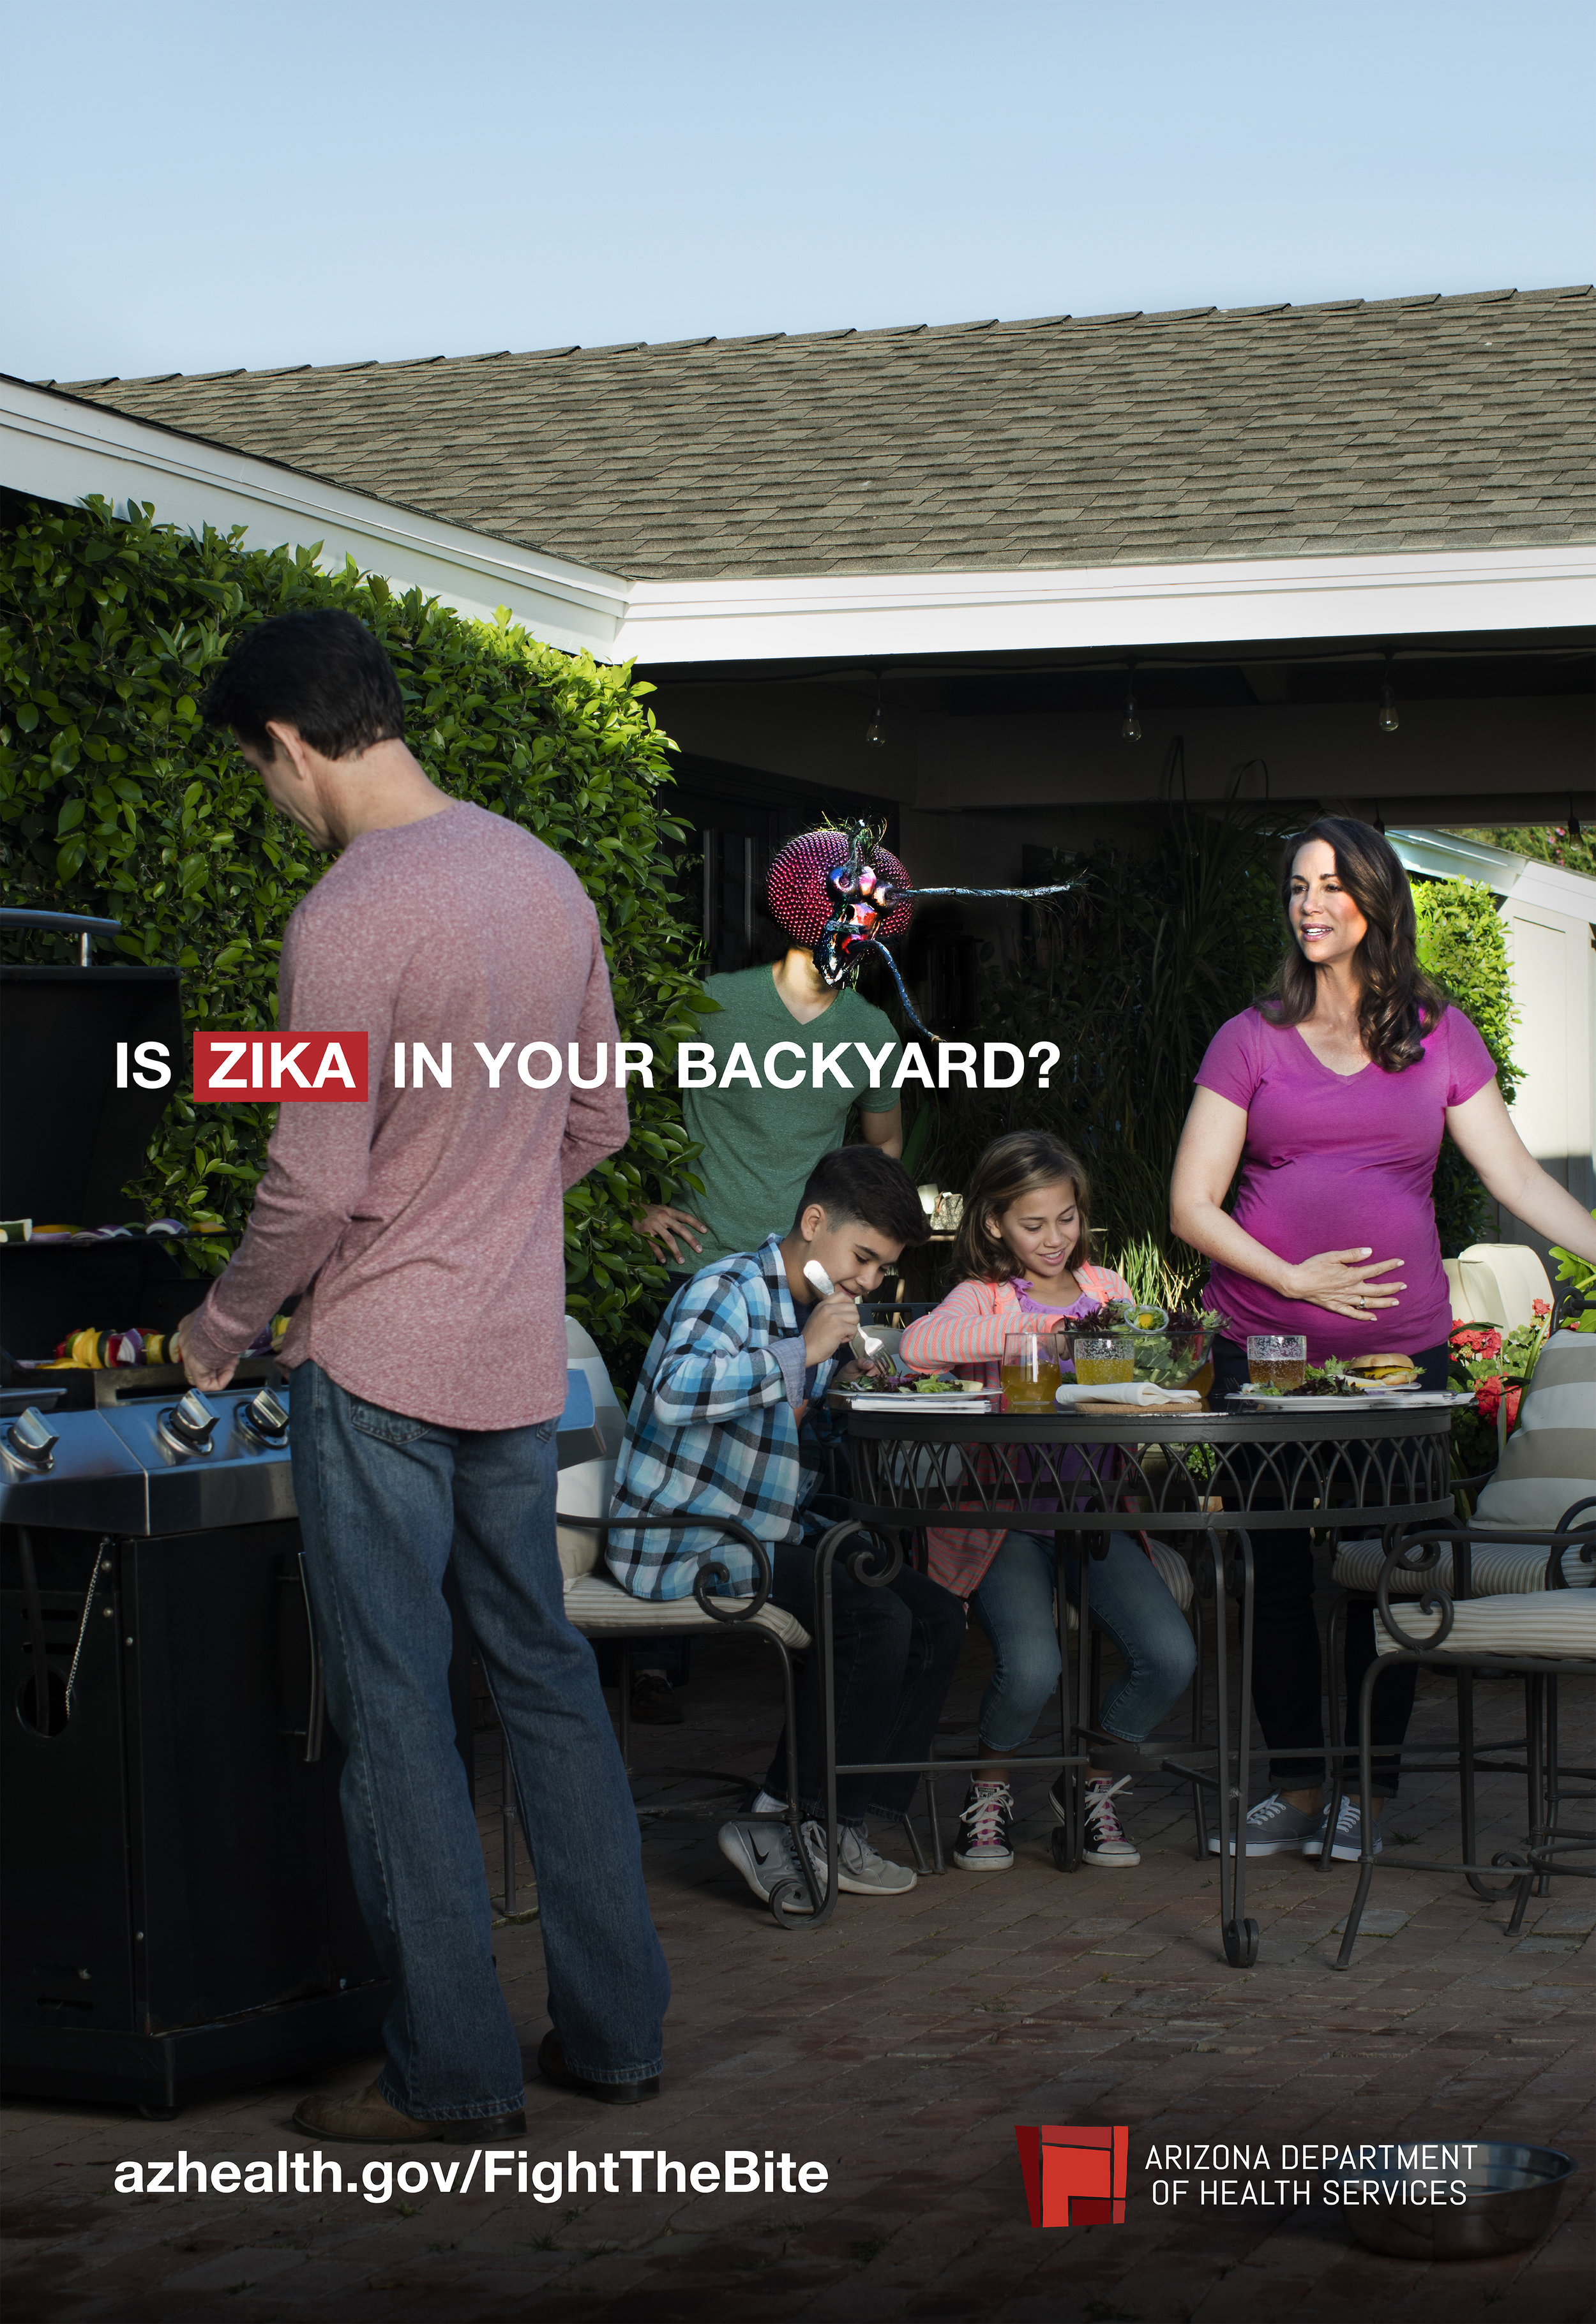 zika-branded-backyardbbq-vertical.jpg